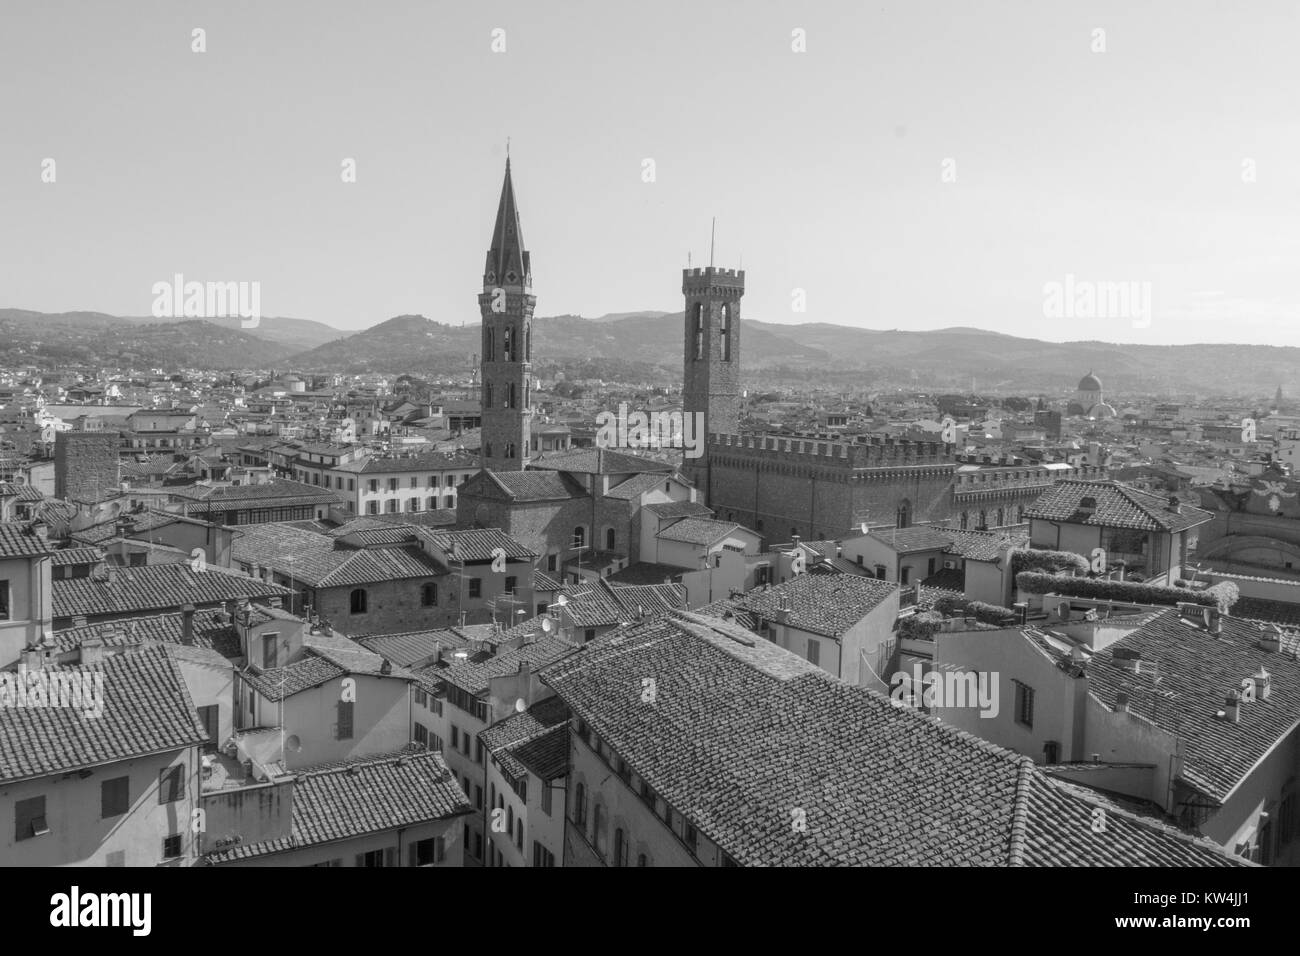 Italy, Florence - May 18 2017: the view of Florence from Palazzo Vecchio on May 18 2017 in Florence, Tuscany, Italy. Stock Photo